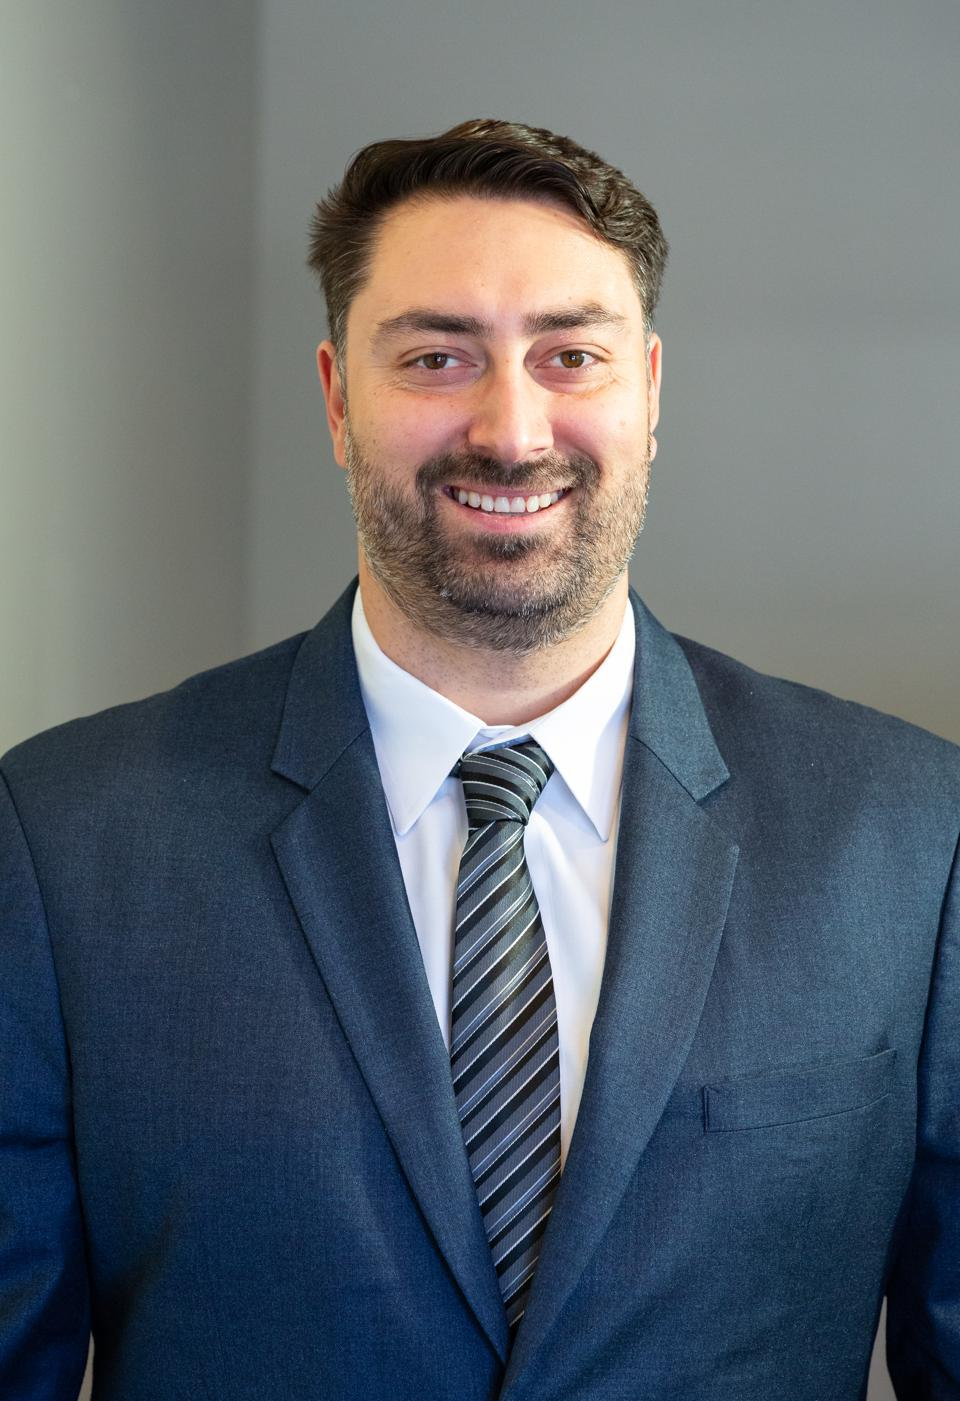 Portrait of male CEO in a suit